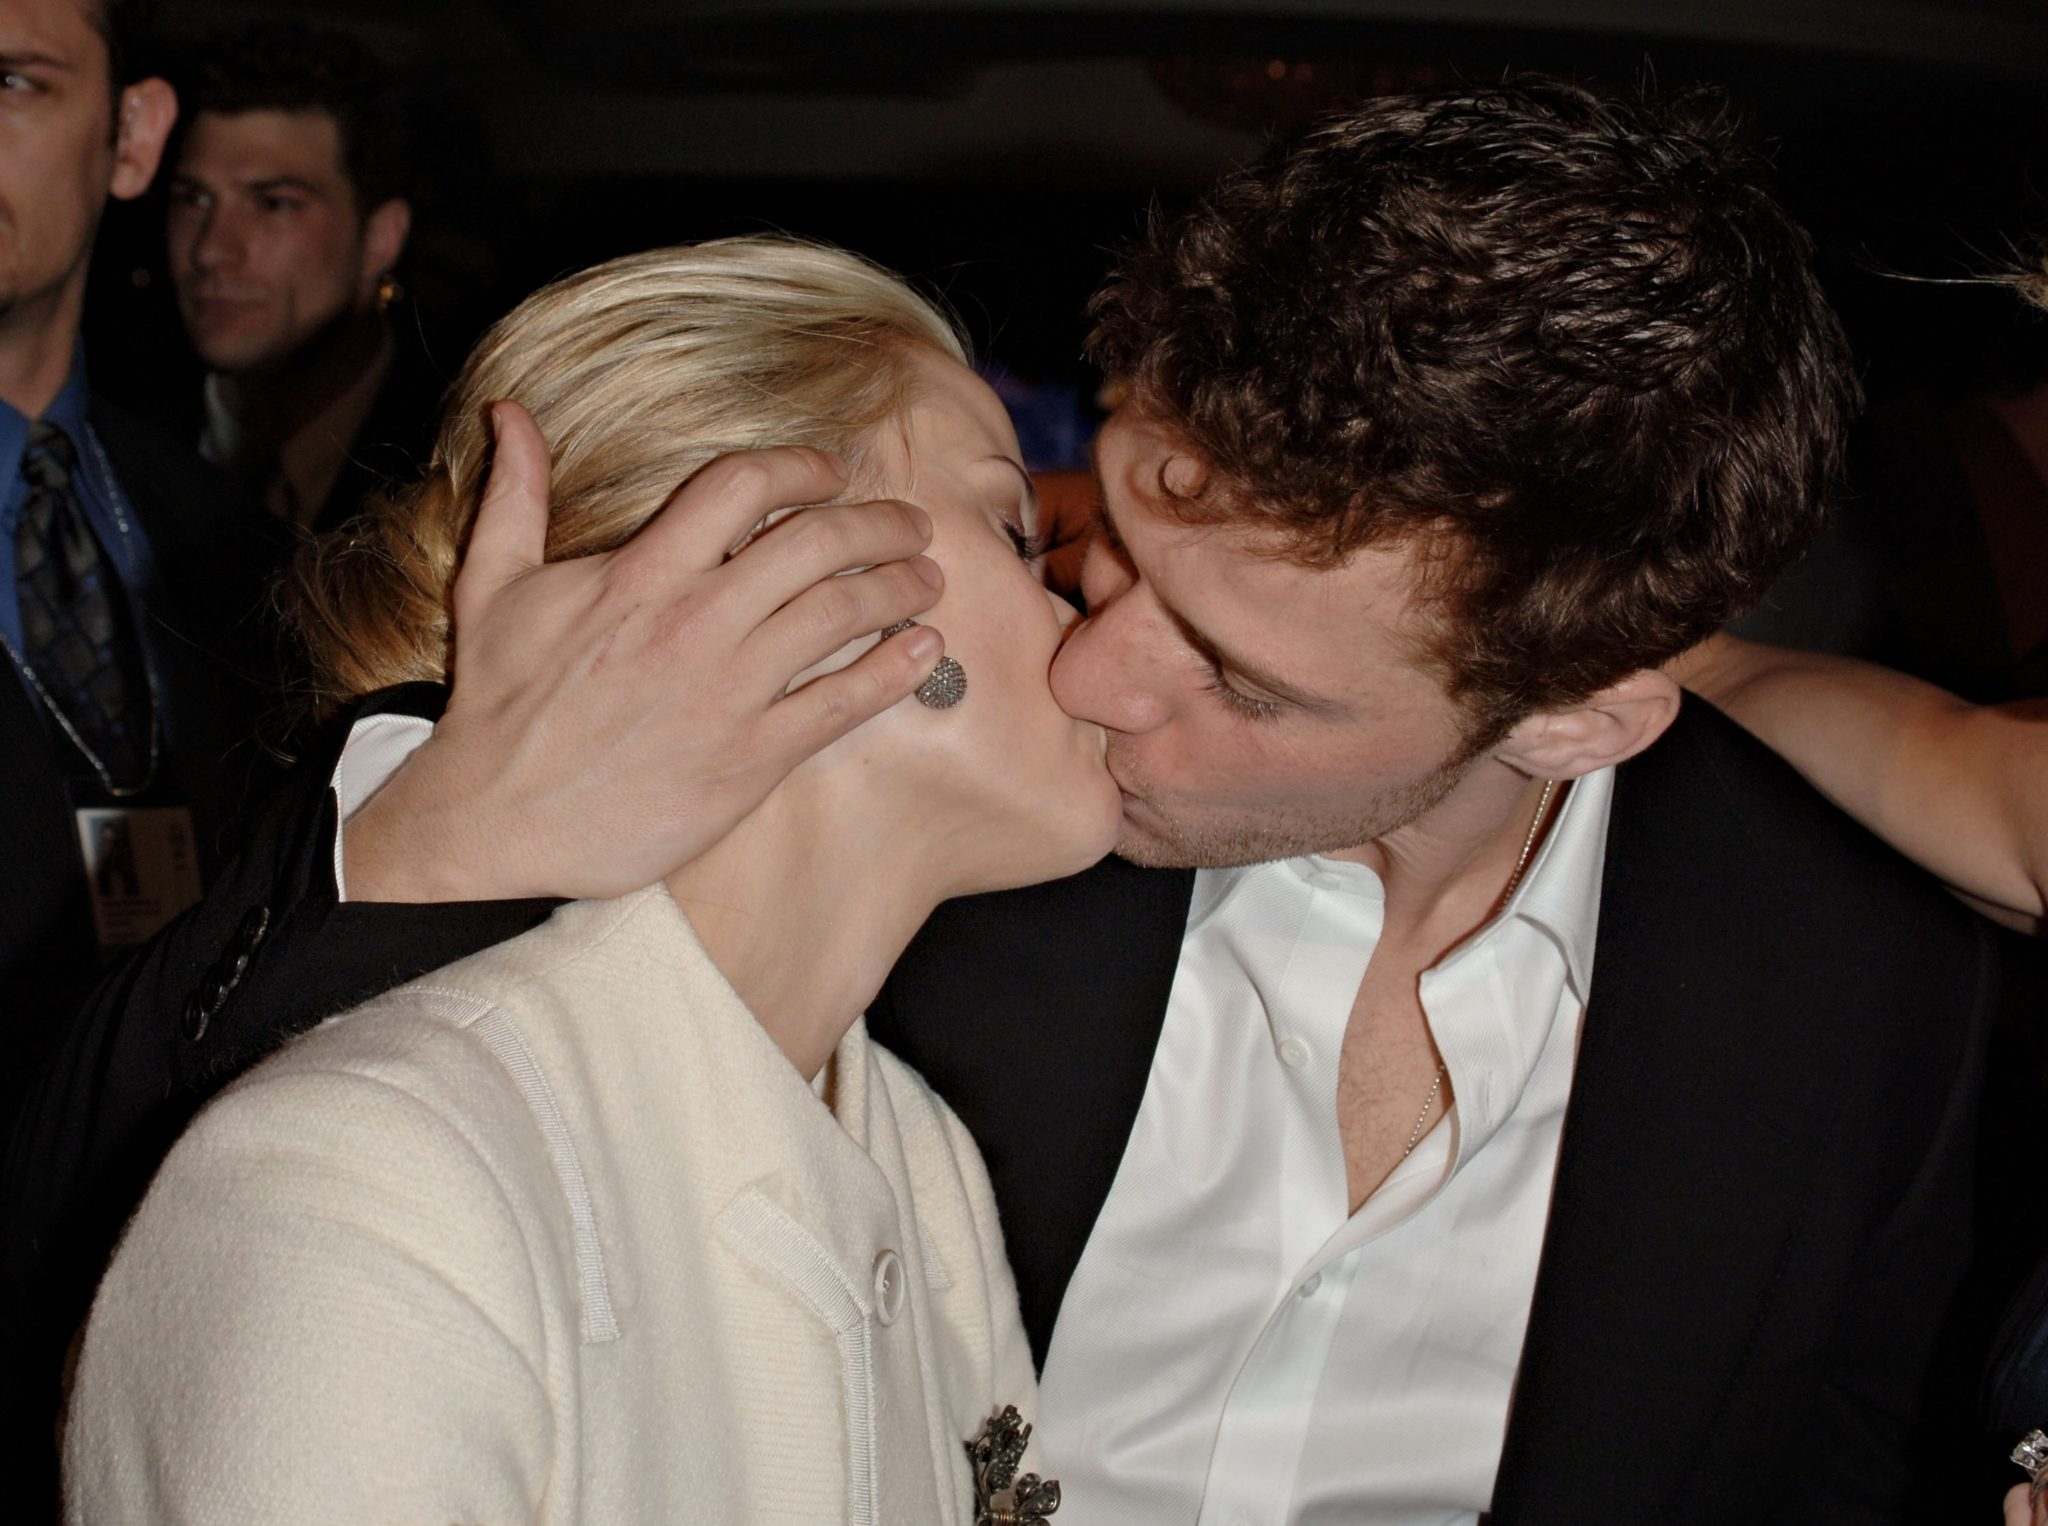 Reese Witherspoon bacia Ryan Phillippe     169  Stephen Shugerman   Getty    Reese Witherspoon And Ryan Phillippe Kiss